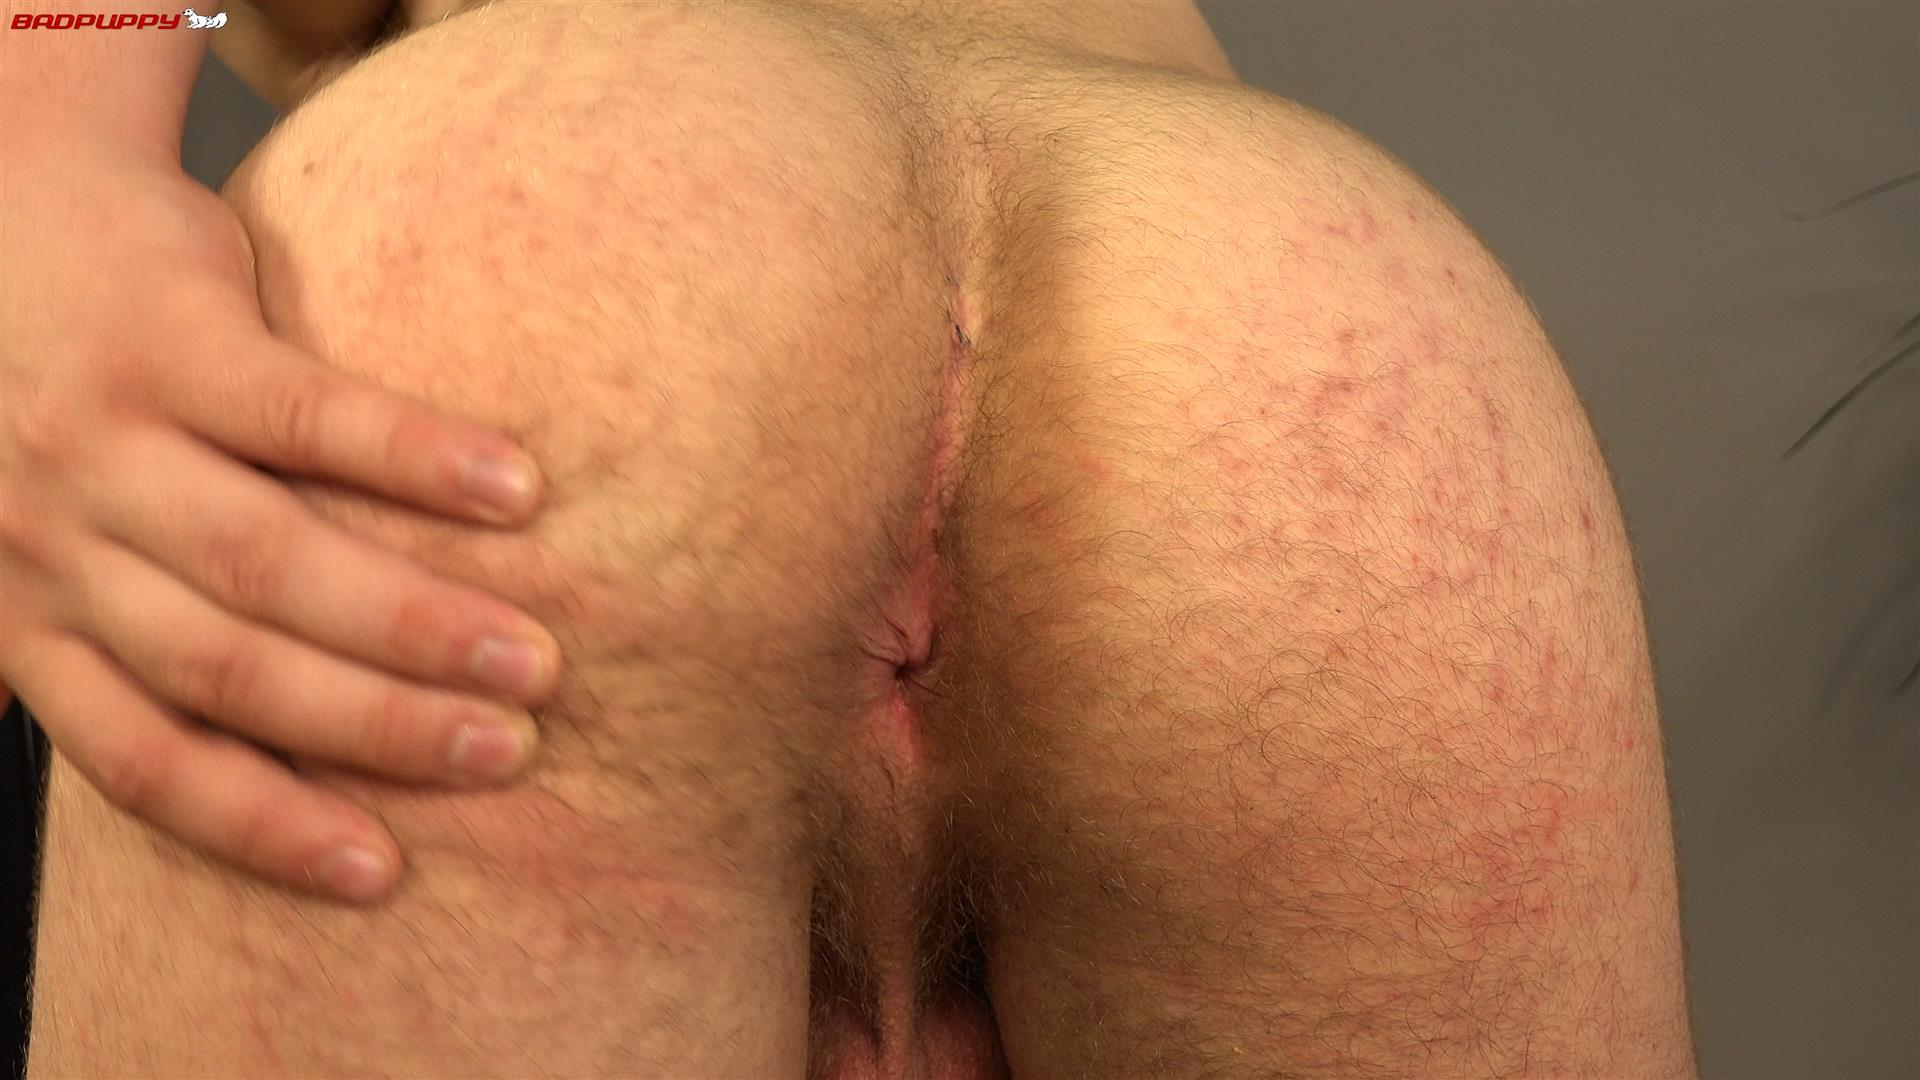 Badpuppy-Kamil-Apolon-Czech-Muscle-Twink-With-Big-Uncut-Cock-Amateur-Gay-Porn-17 Czech Muscle Twink Jerks His Big Uncut Cock For Cash